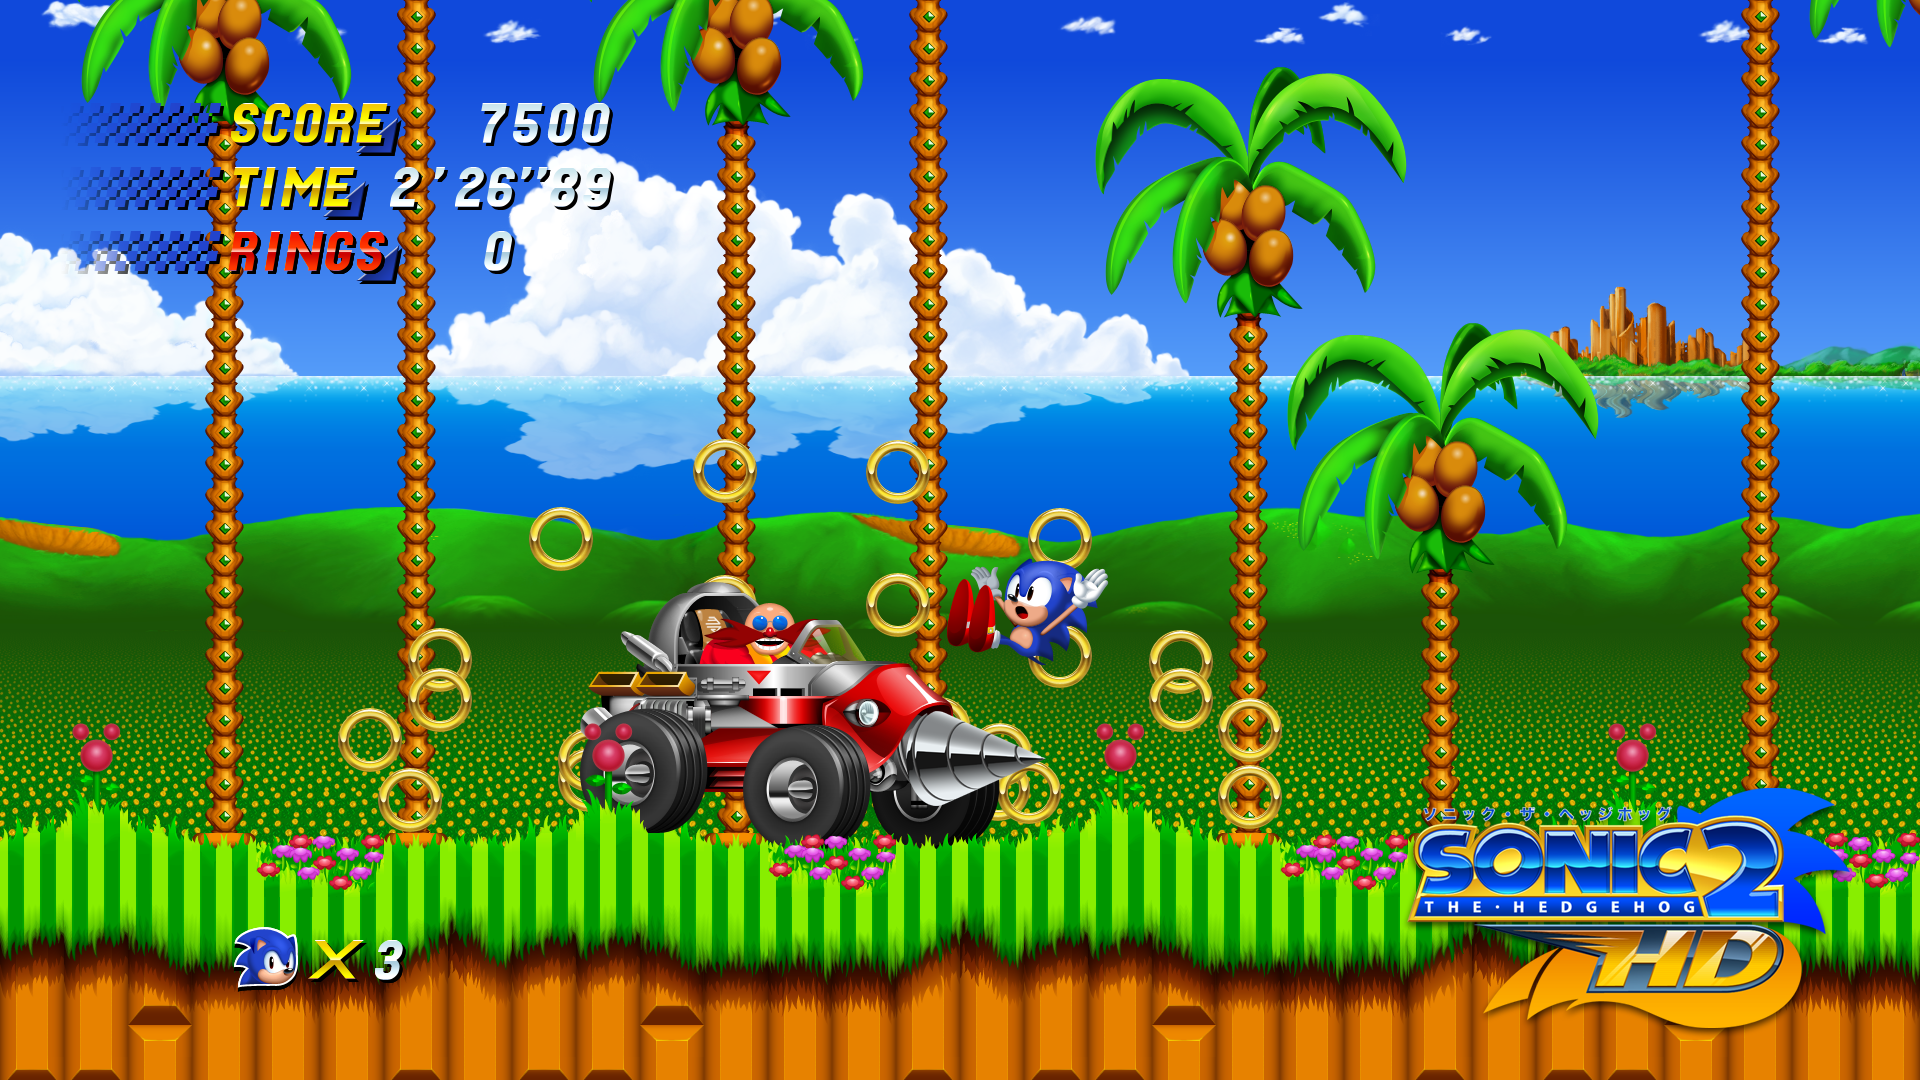 Seven Incredible Fan Remakes Of Classic Games sonic the hedgehog 2 hd screenshot 5f19abc9